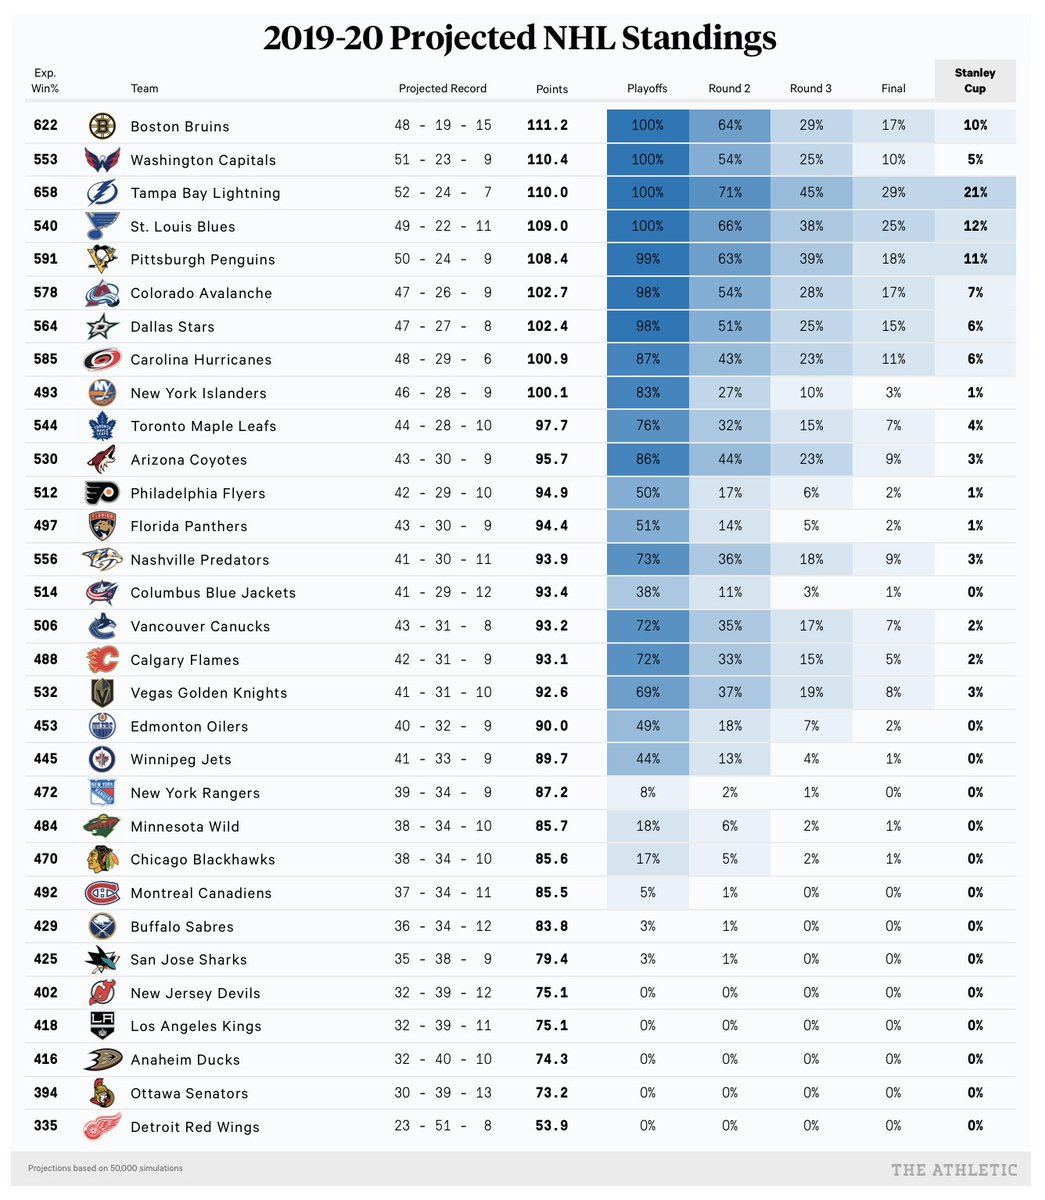 NHL standings projections and playoff